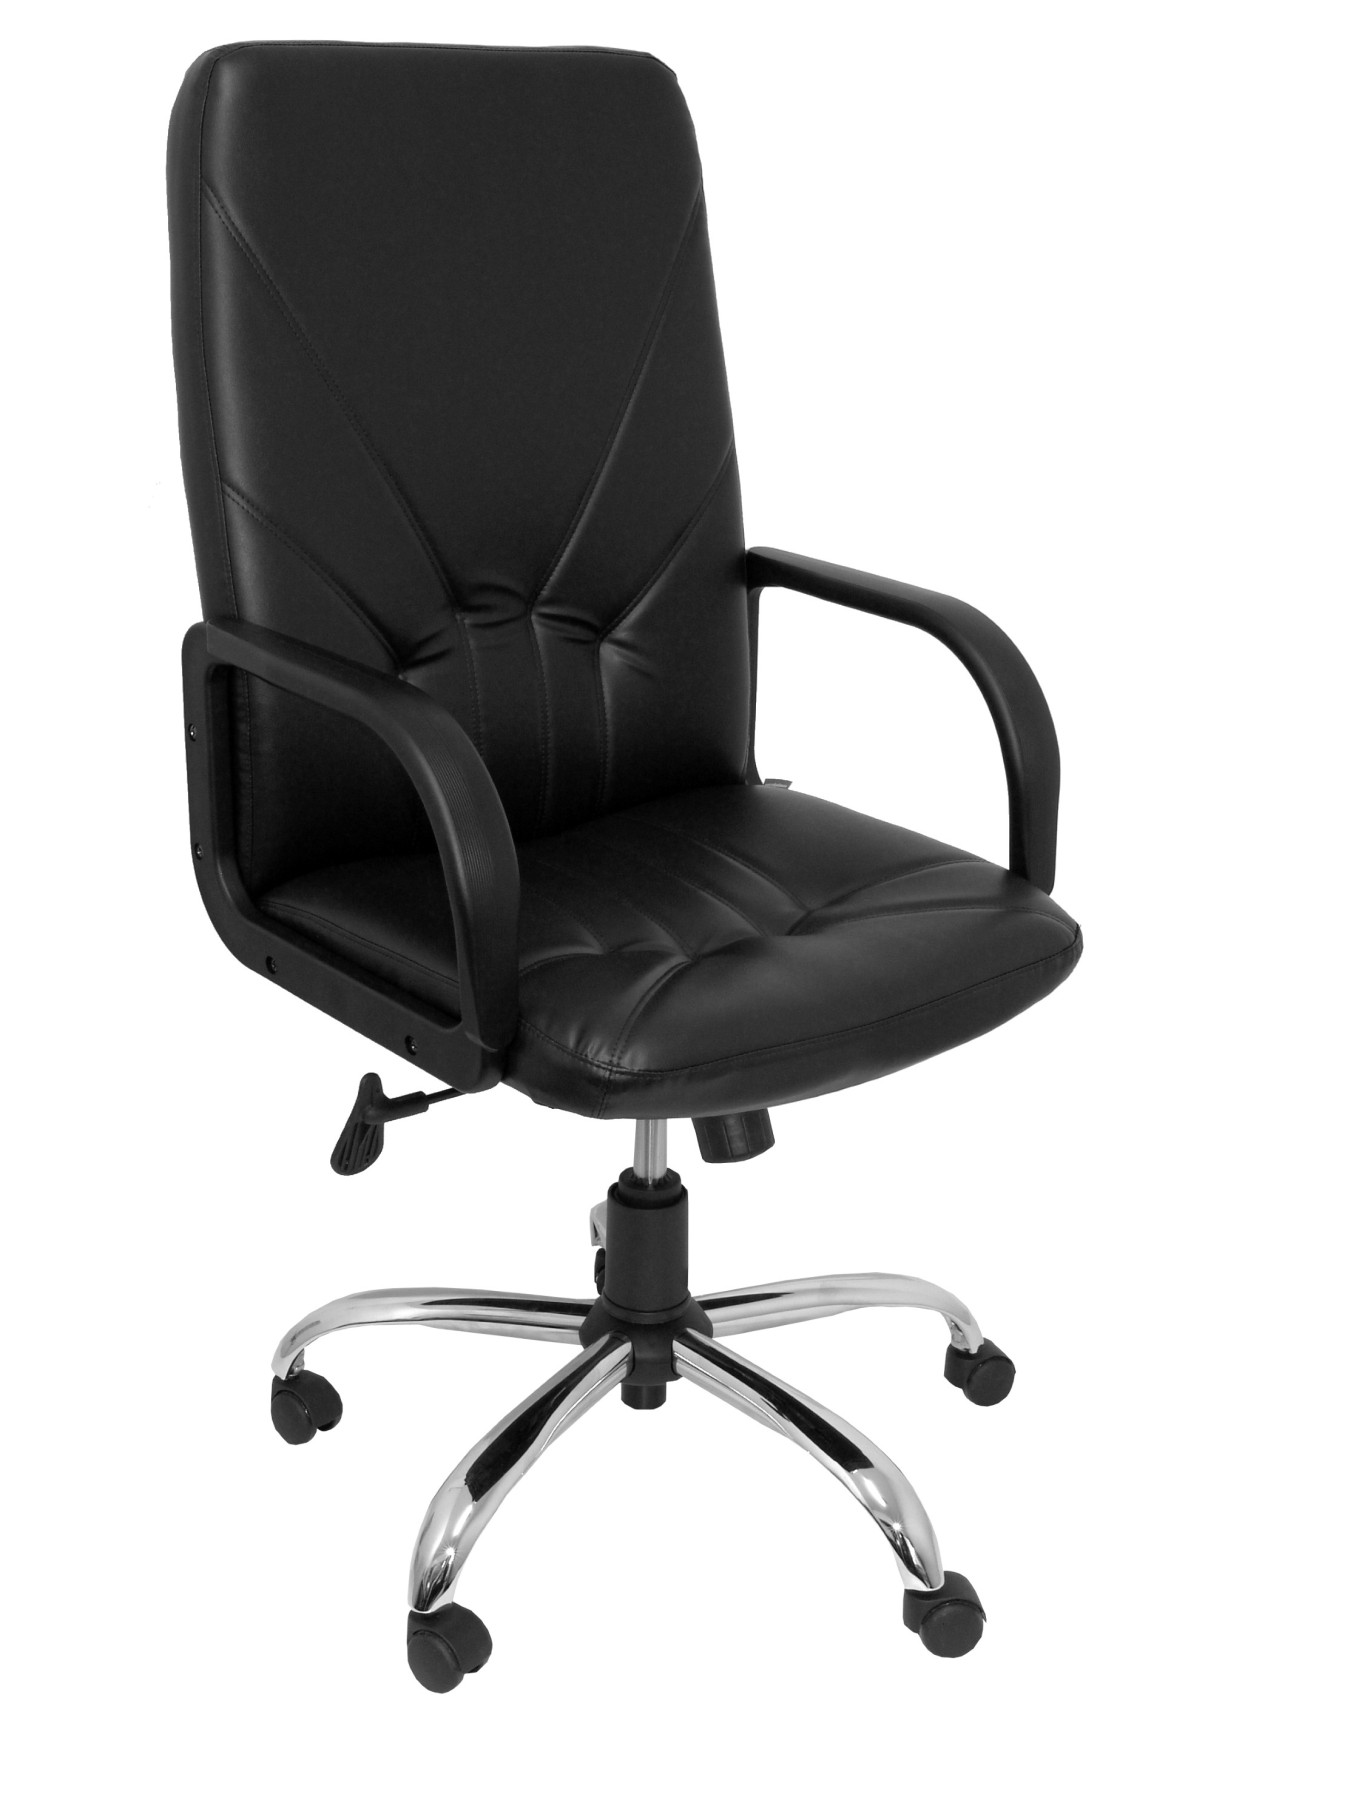 Armchair Ergonomic Steering With Tilting House Mechanism And Dimmable In High Altitude Upholstered In Similpiel Color Black PIQU